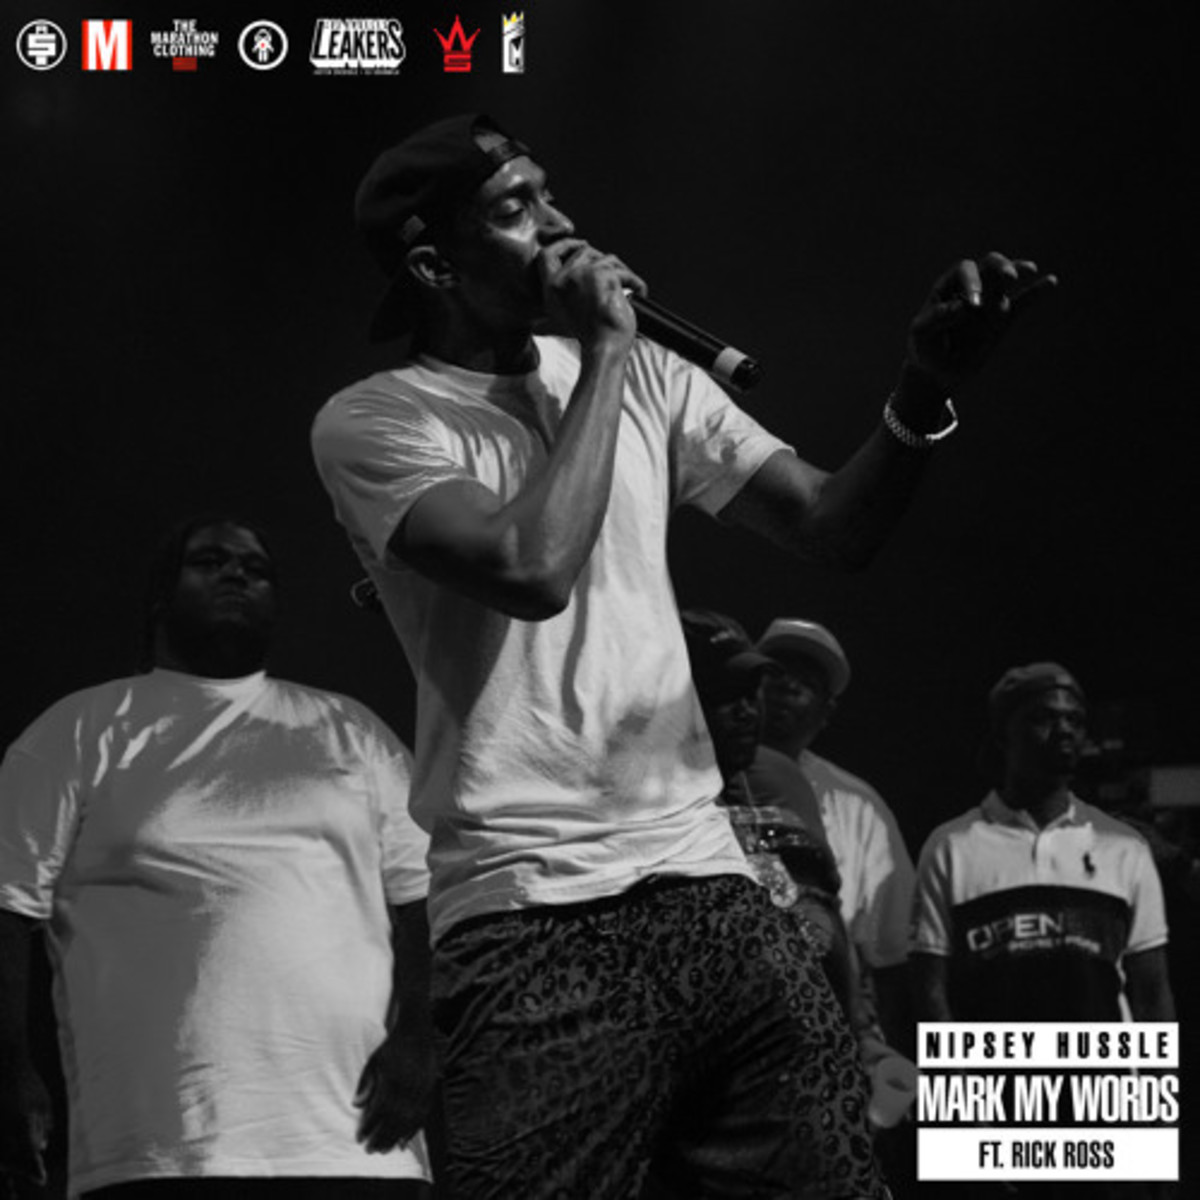 nipsey-hussle-mark-my-words.jpg